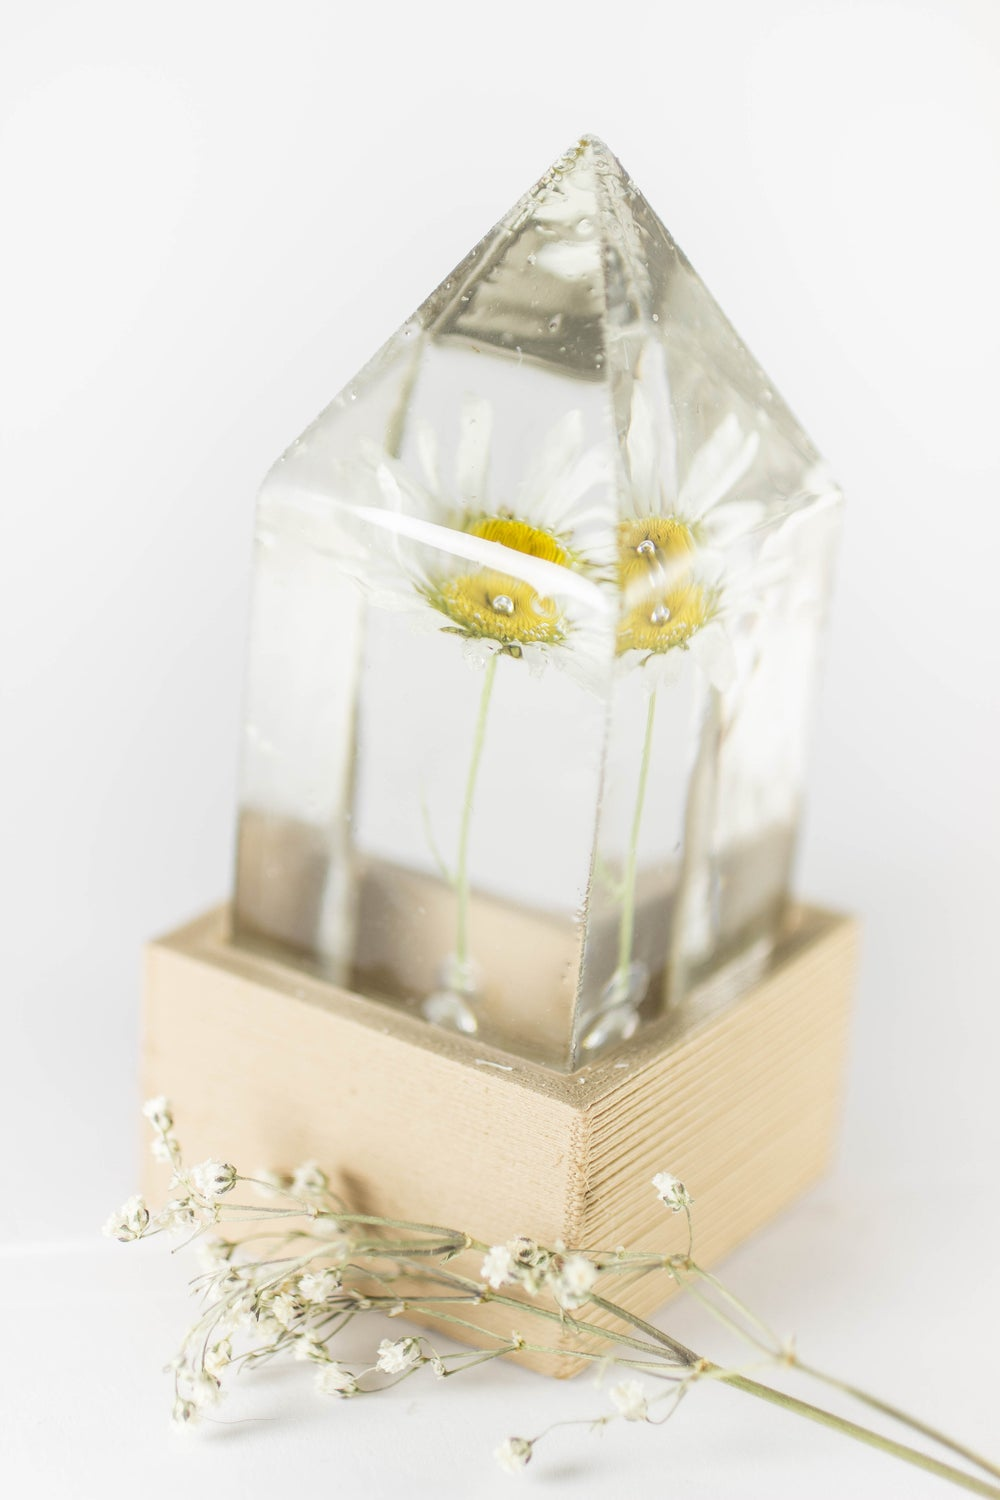 Image of Oxeye Daisy (Leucanthemum vulgare) - Floral Prism Desk Lamp #1